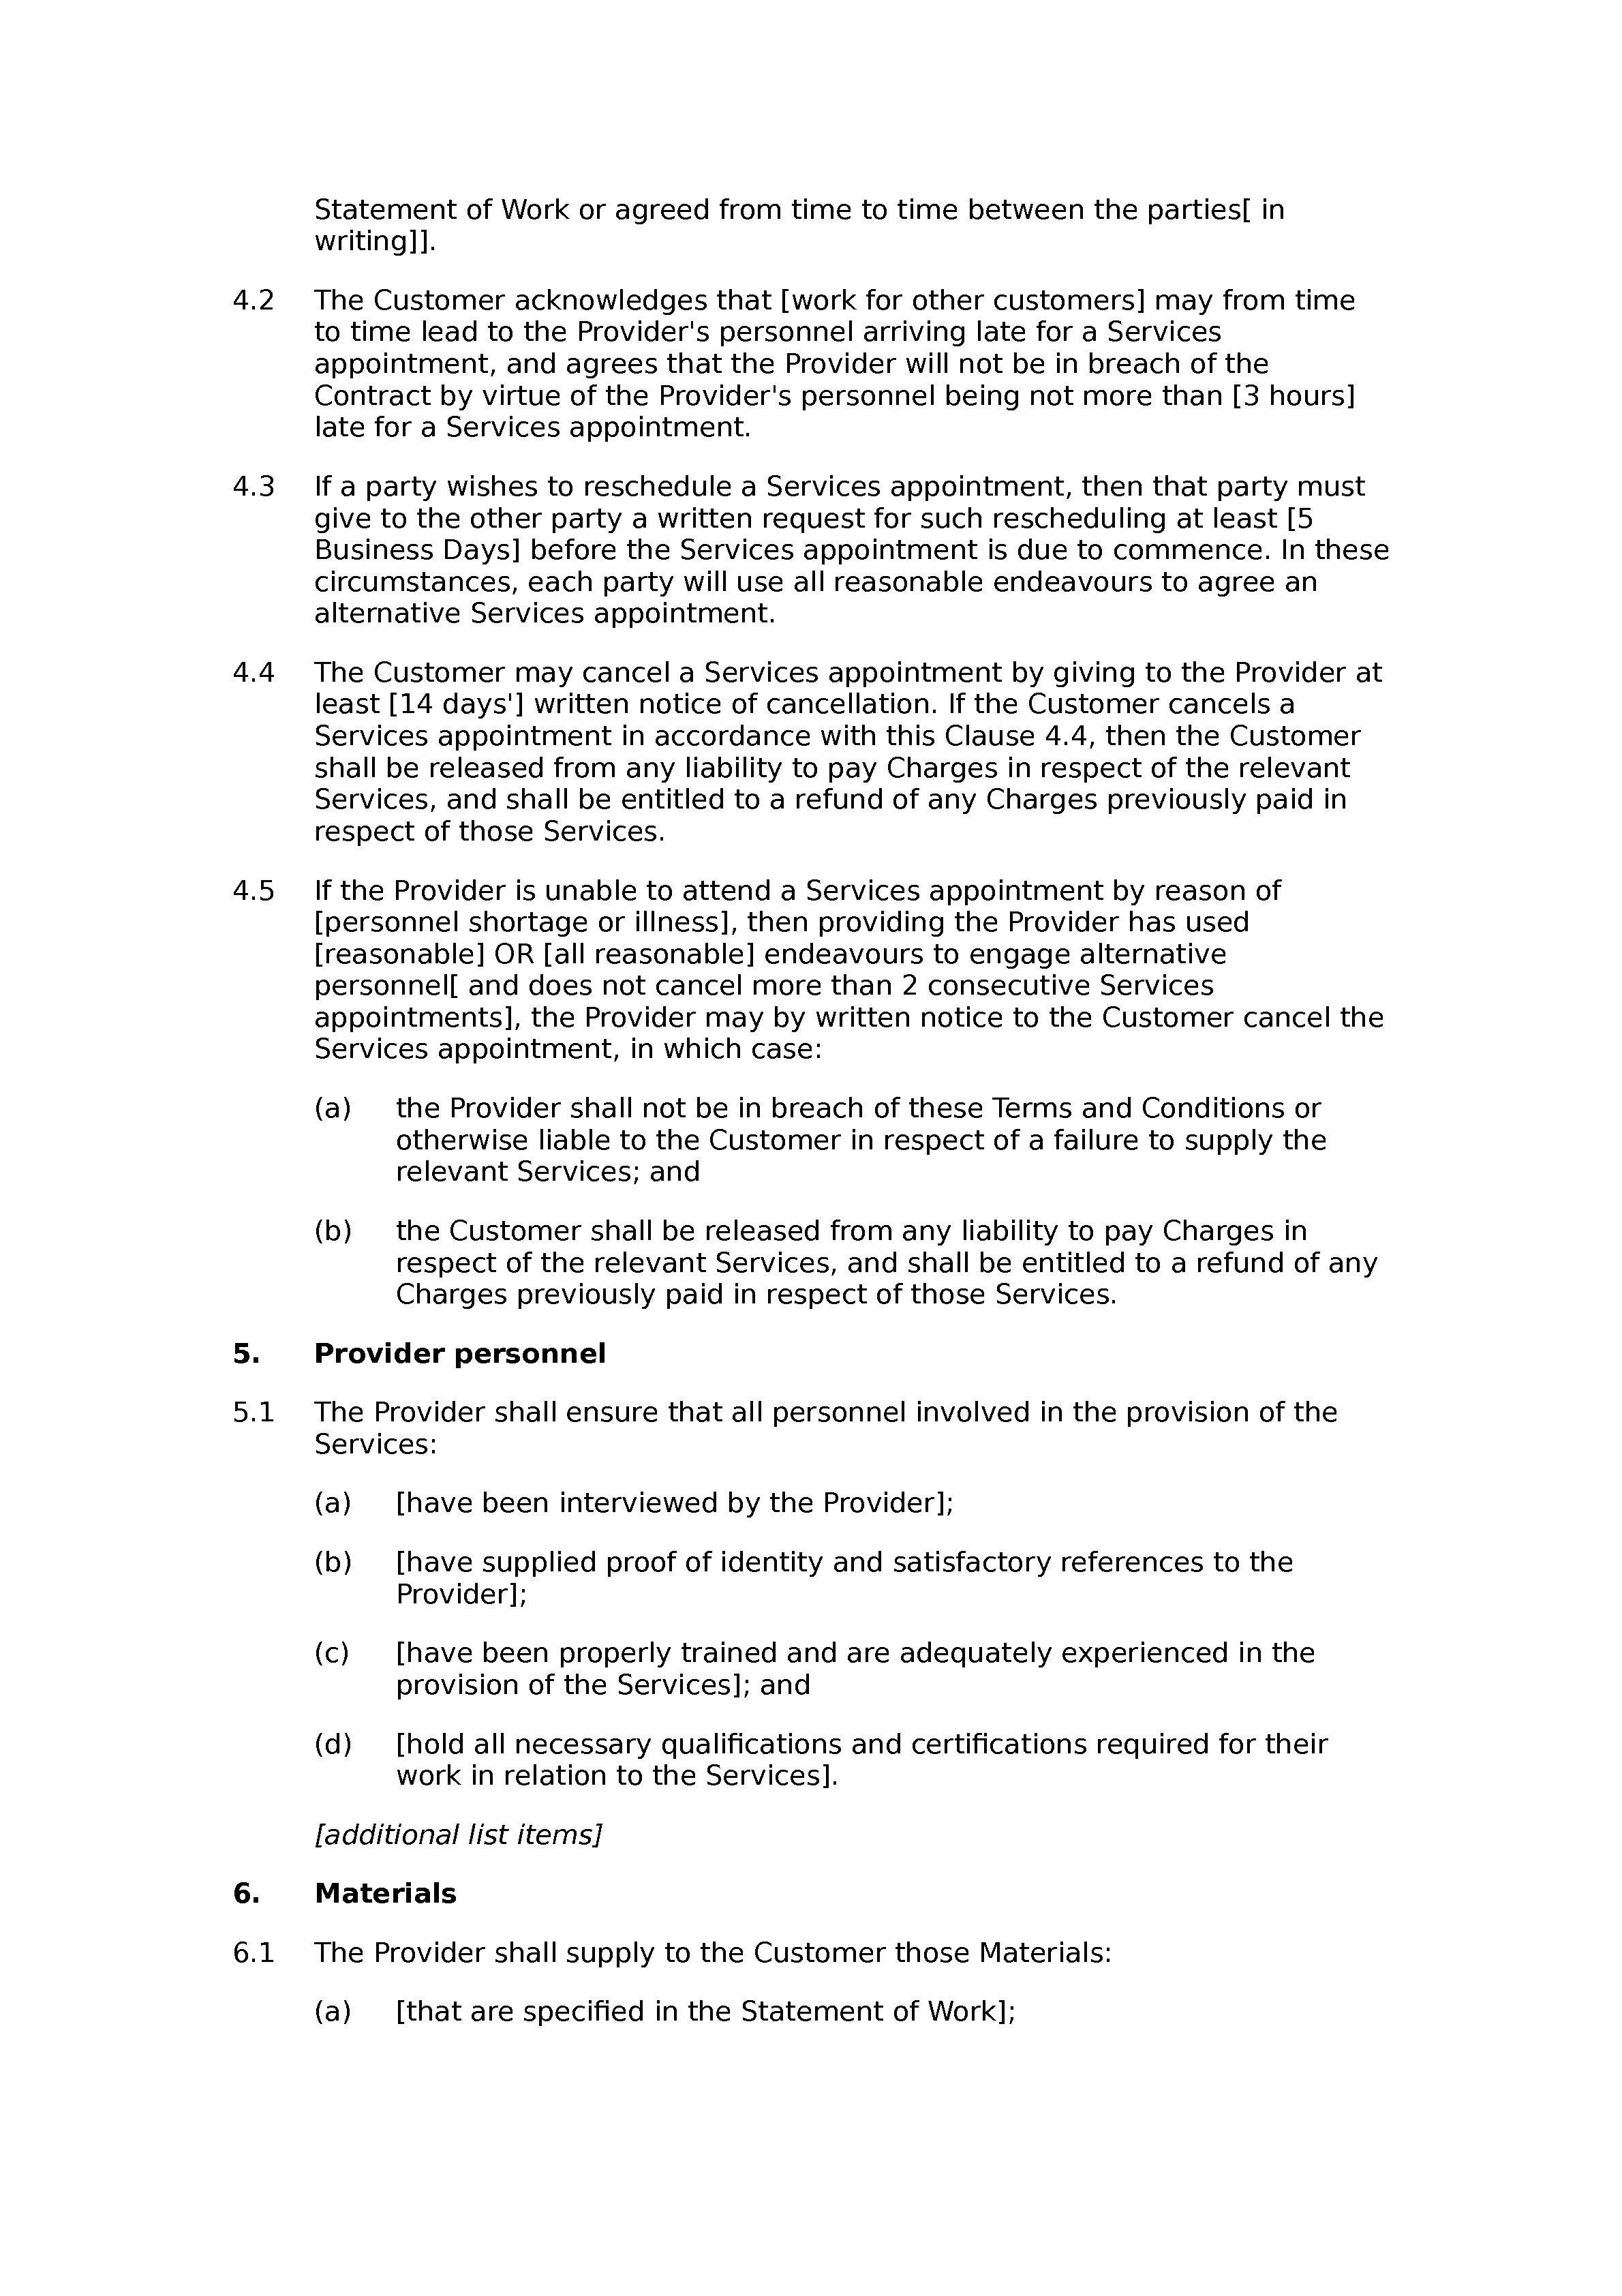 nih subcontract statement of work example